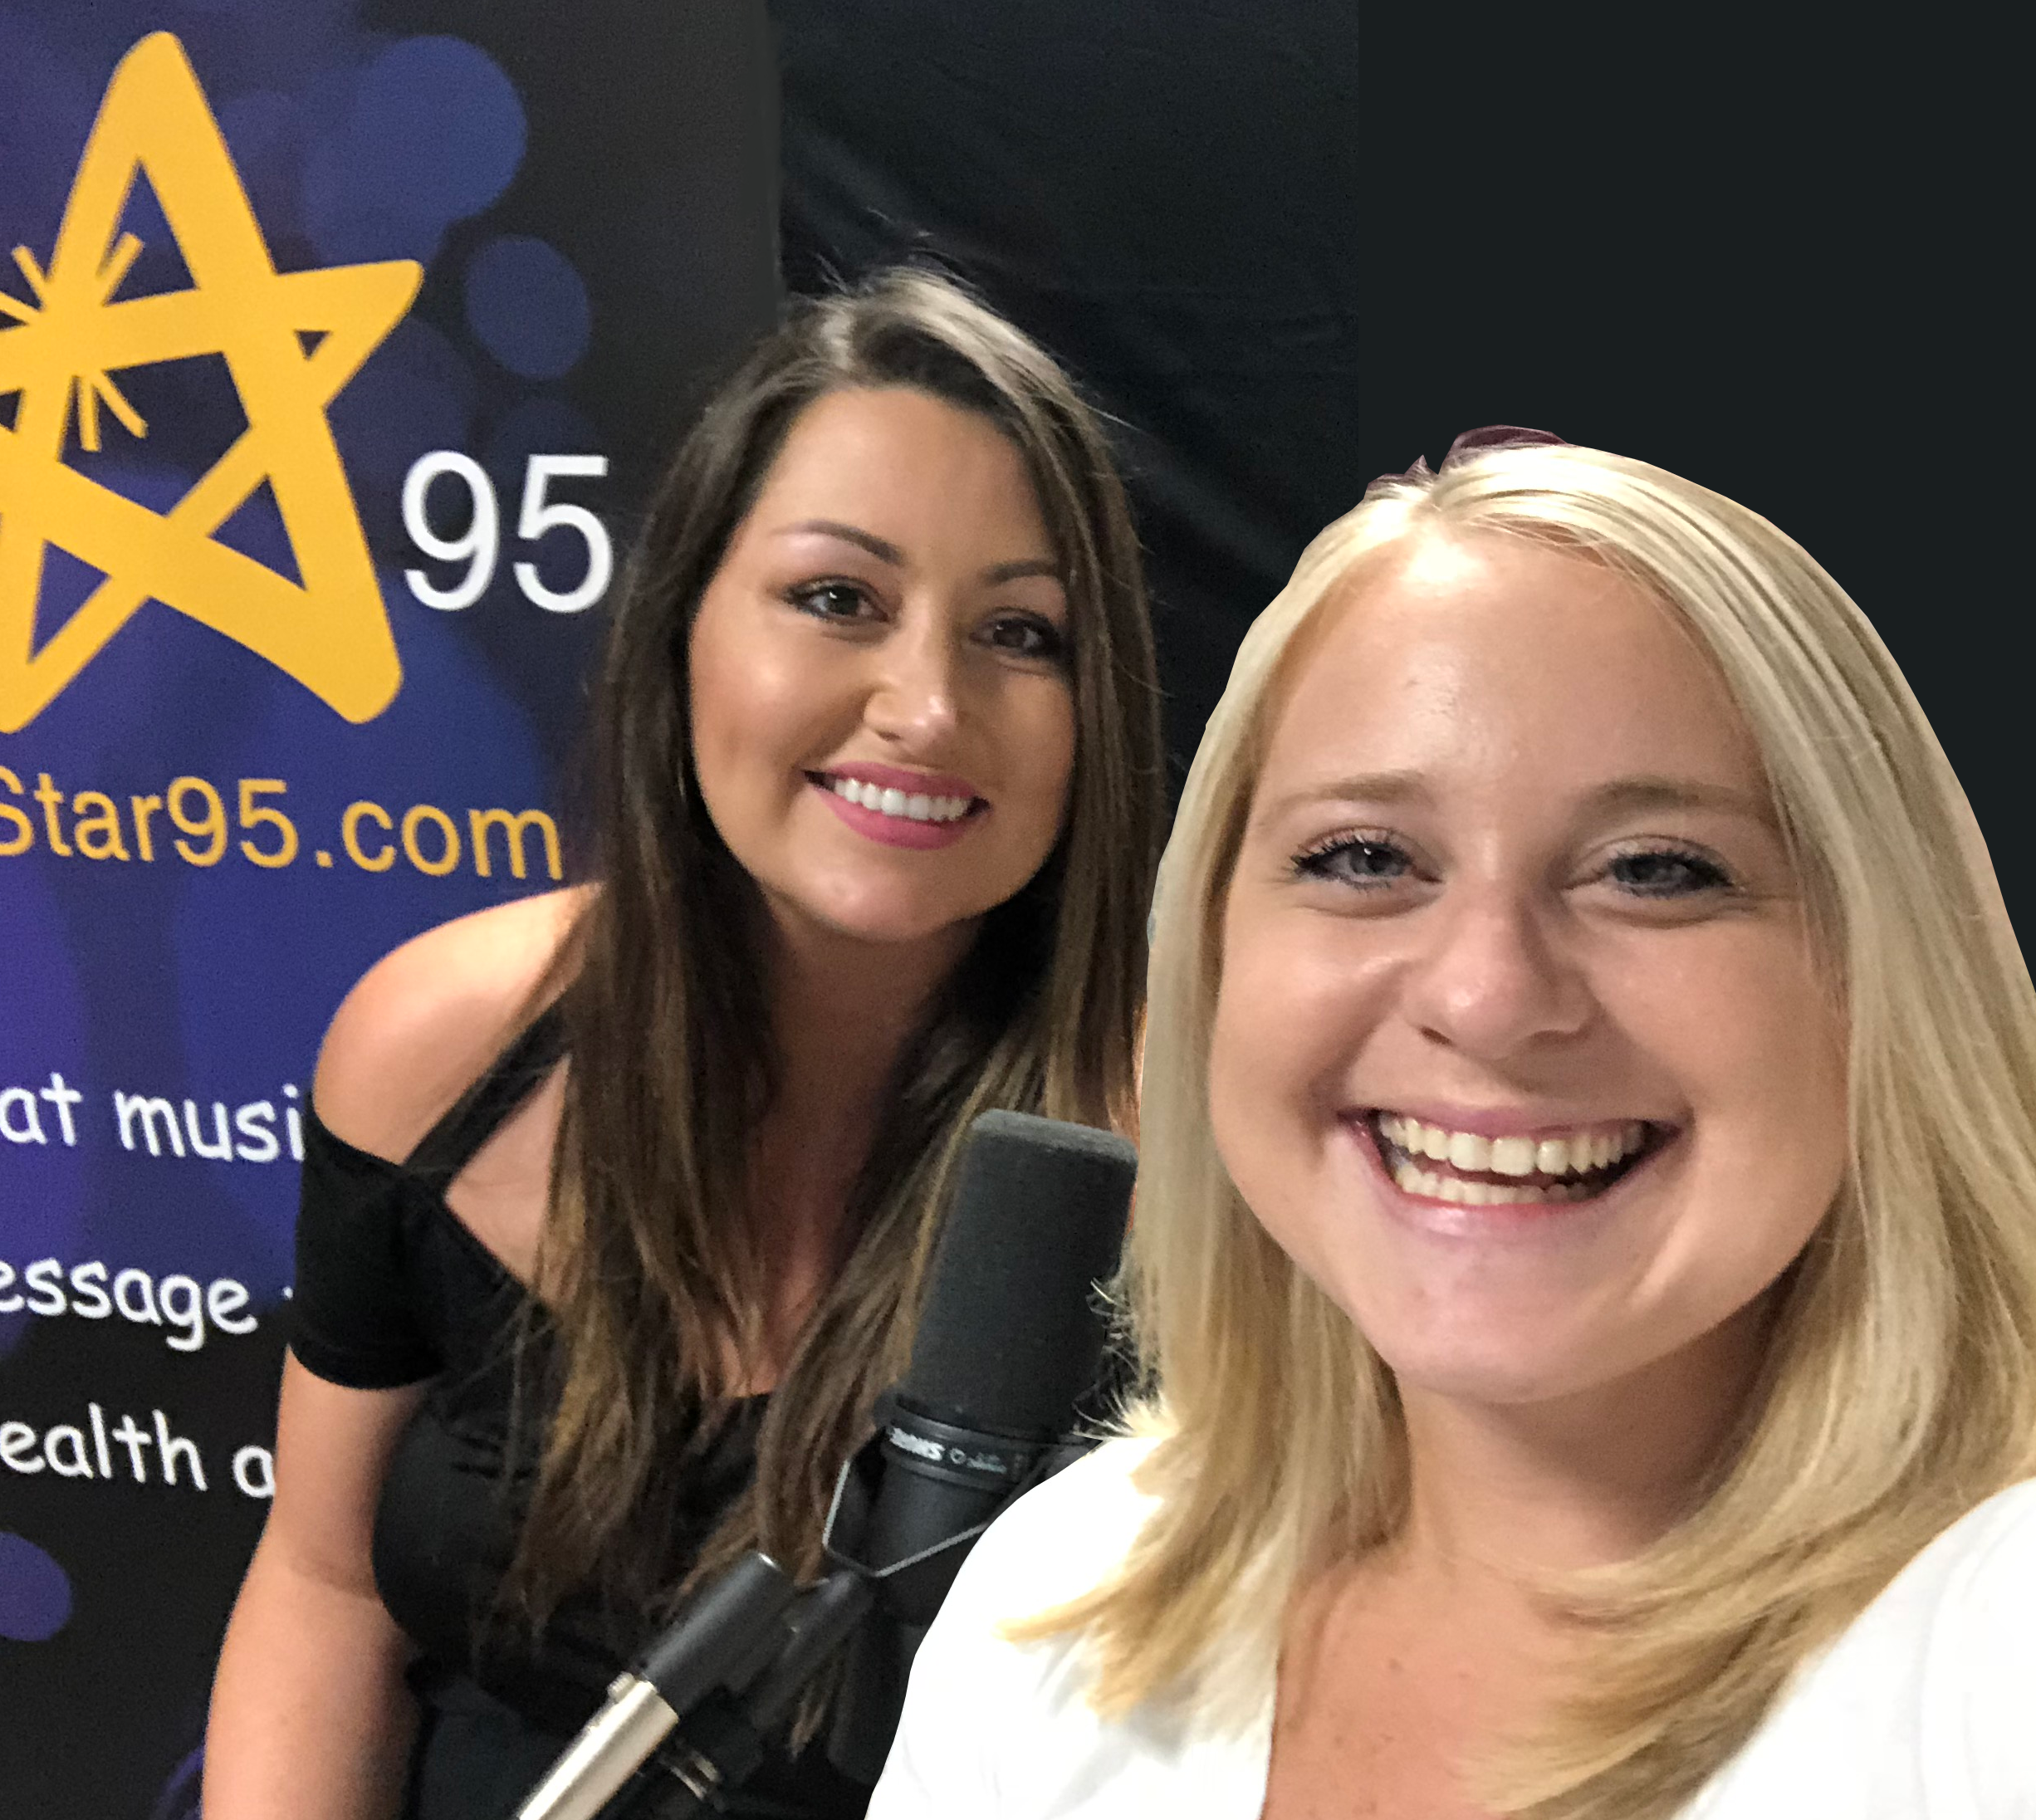 6 degrees Dunedin takes over MyStar95.com